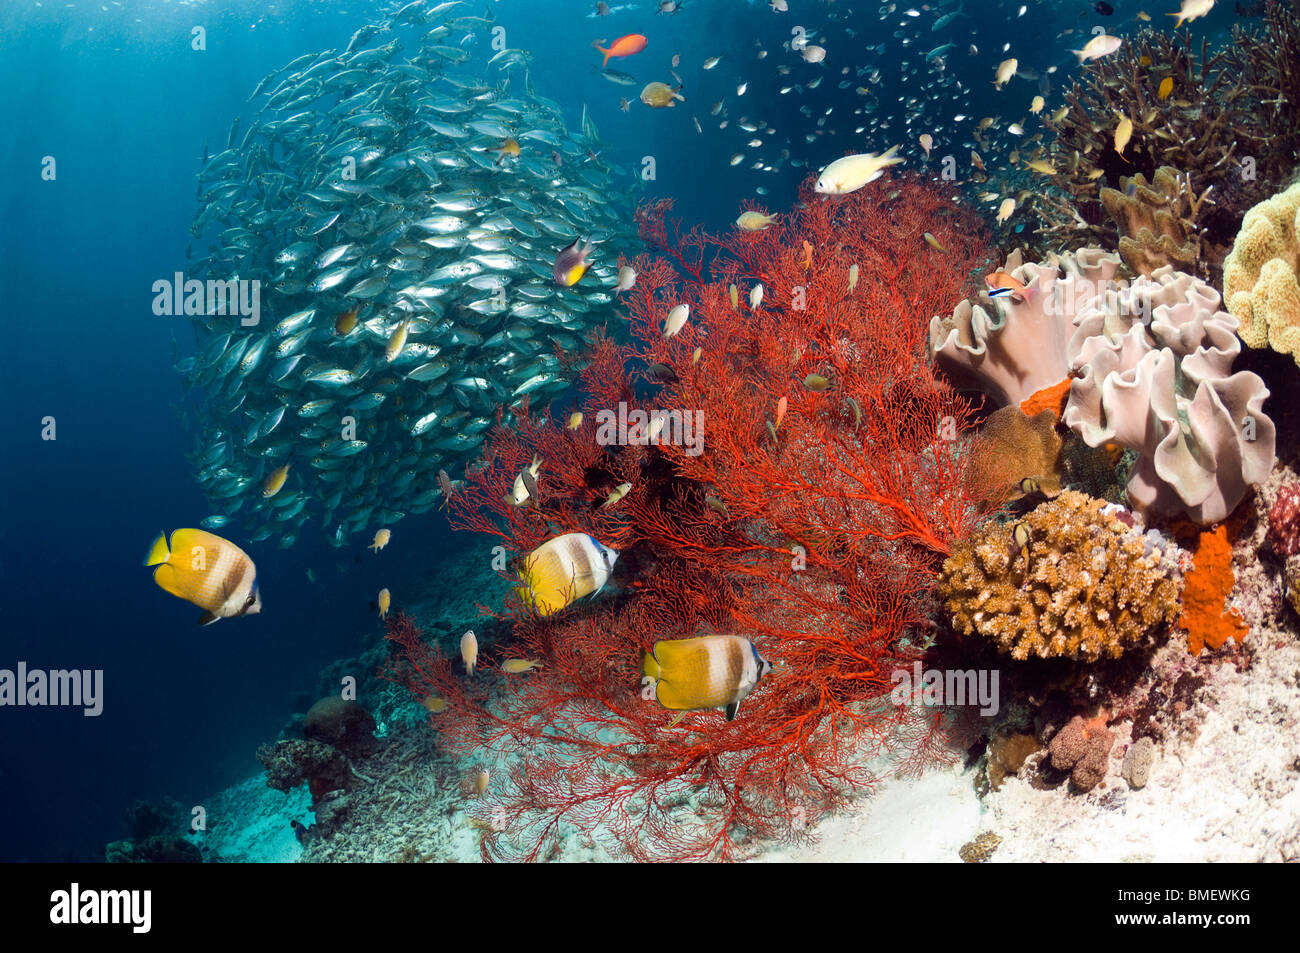 Coral reef scenery with Klein's butterflyfish with gorgonian and a school of Bigeye scad, Misool, West Papua, - Stock Image